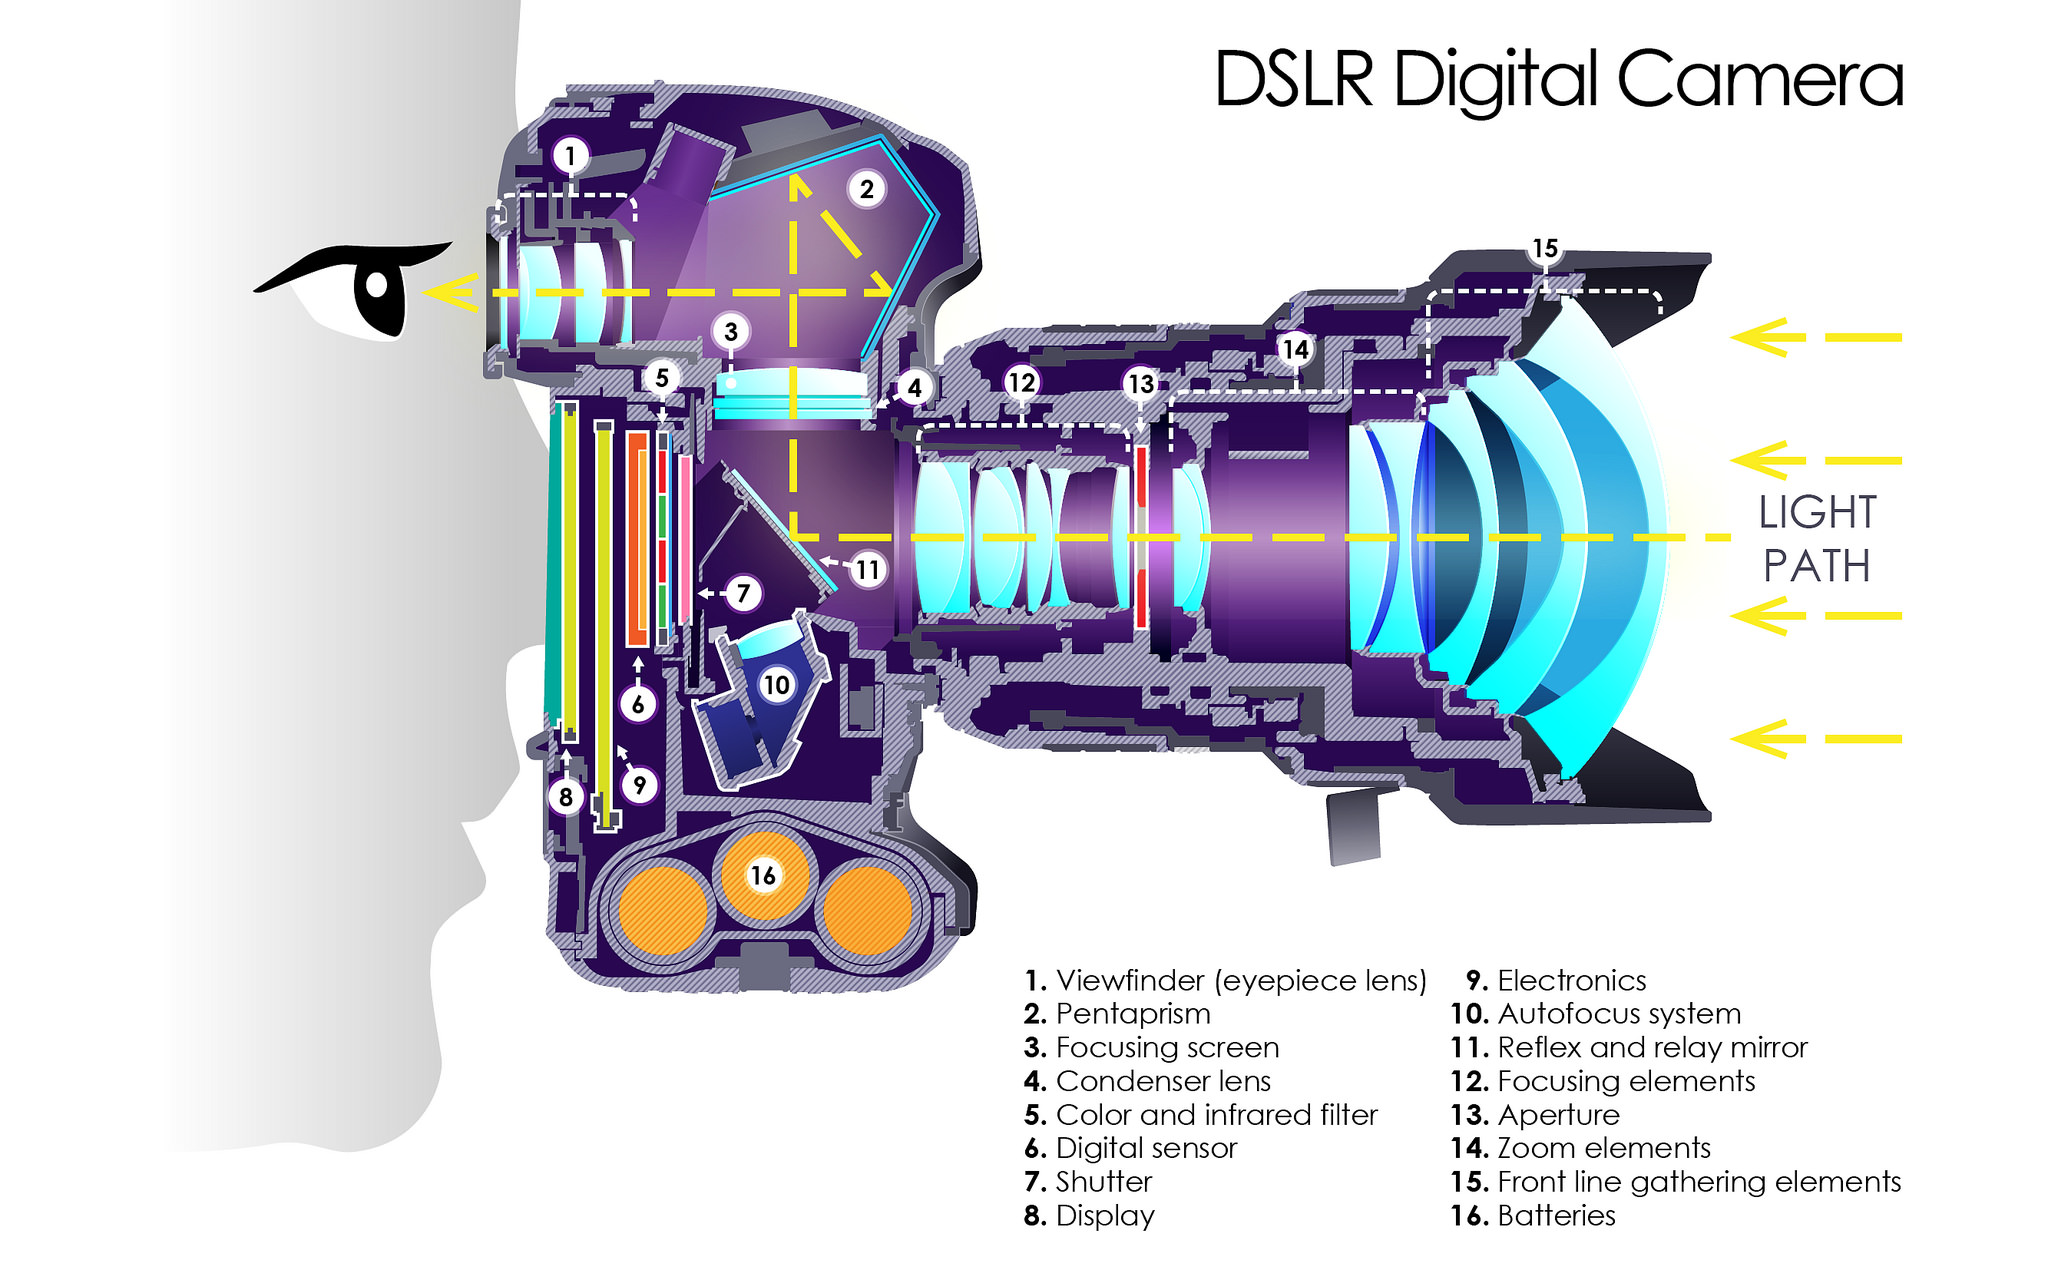 DSLR Digital Camera Section